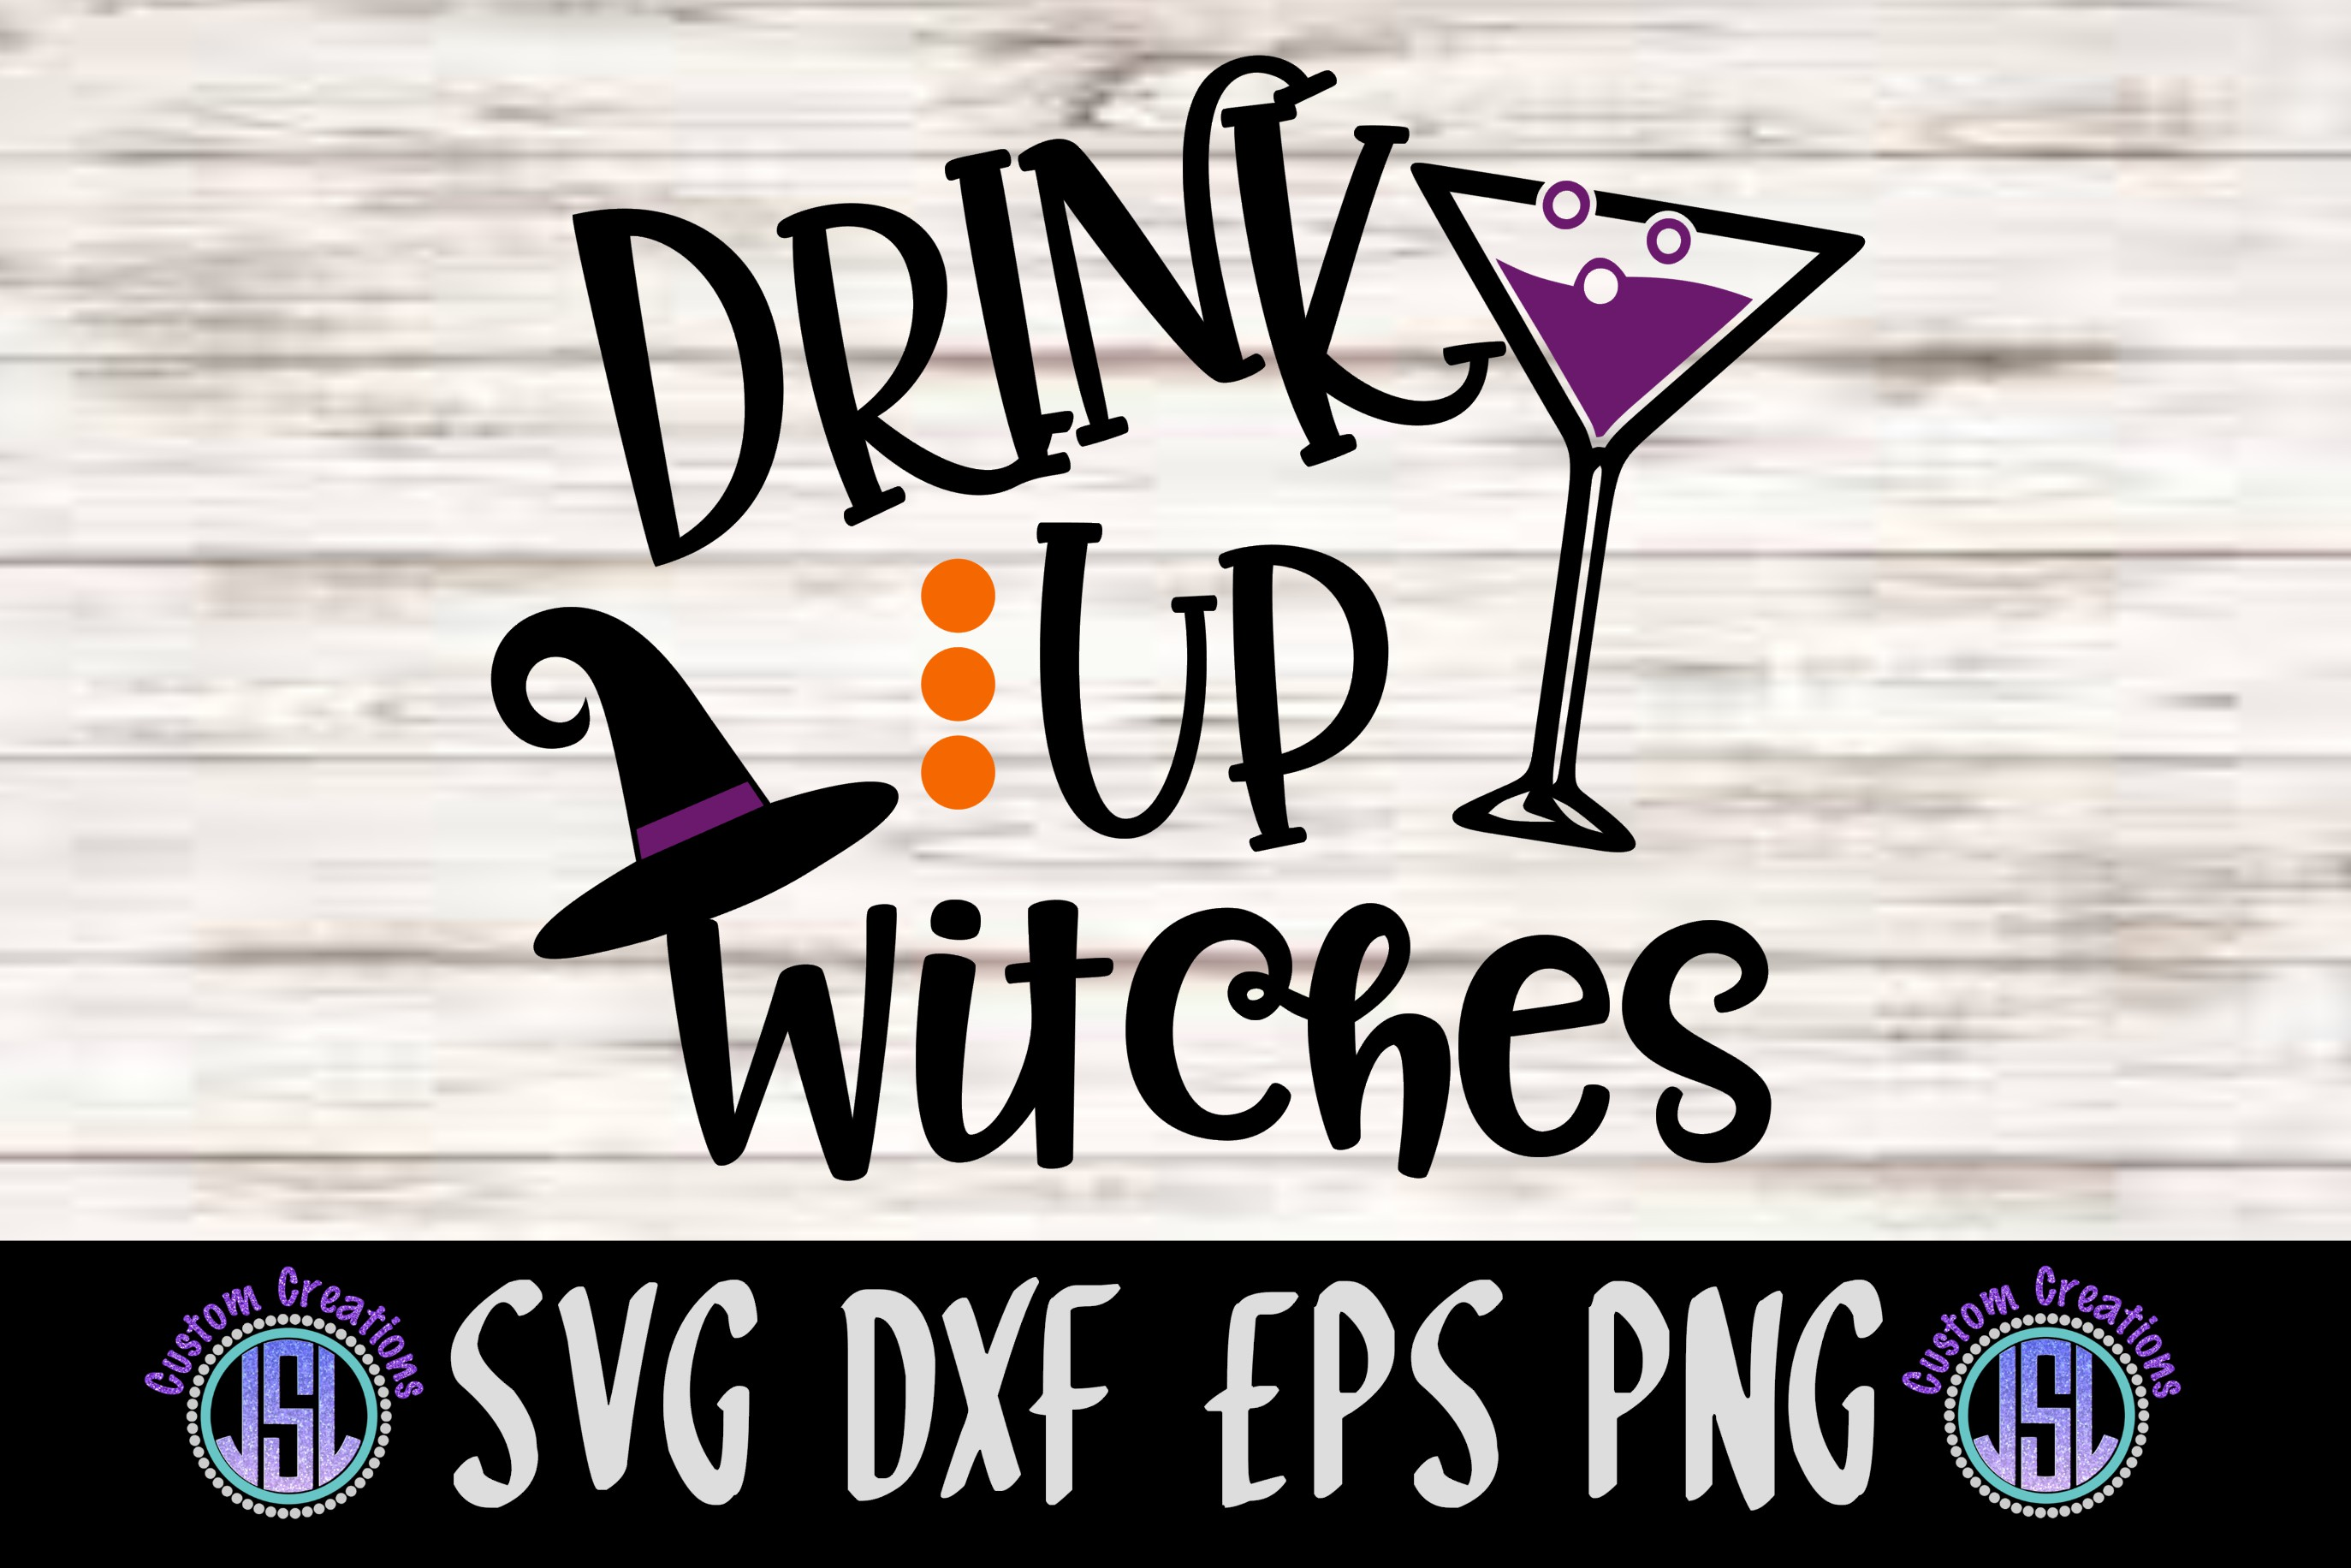 Drink Up Witches| SVG DXF EPS PNG Cut File example image 1